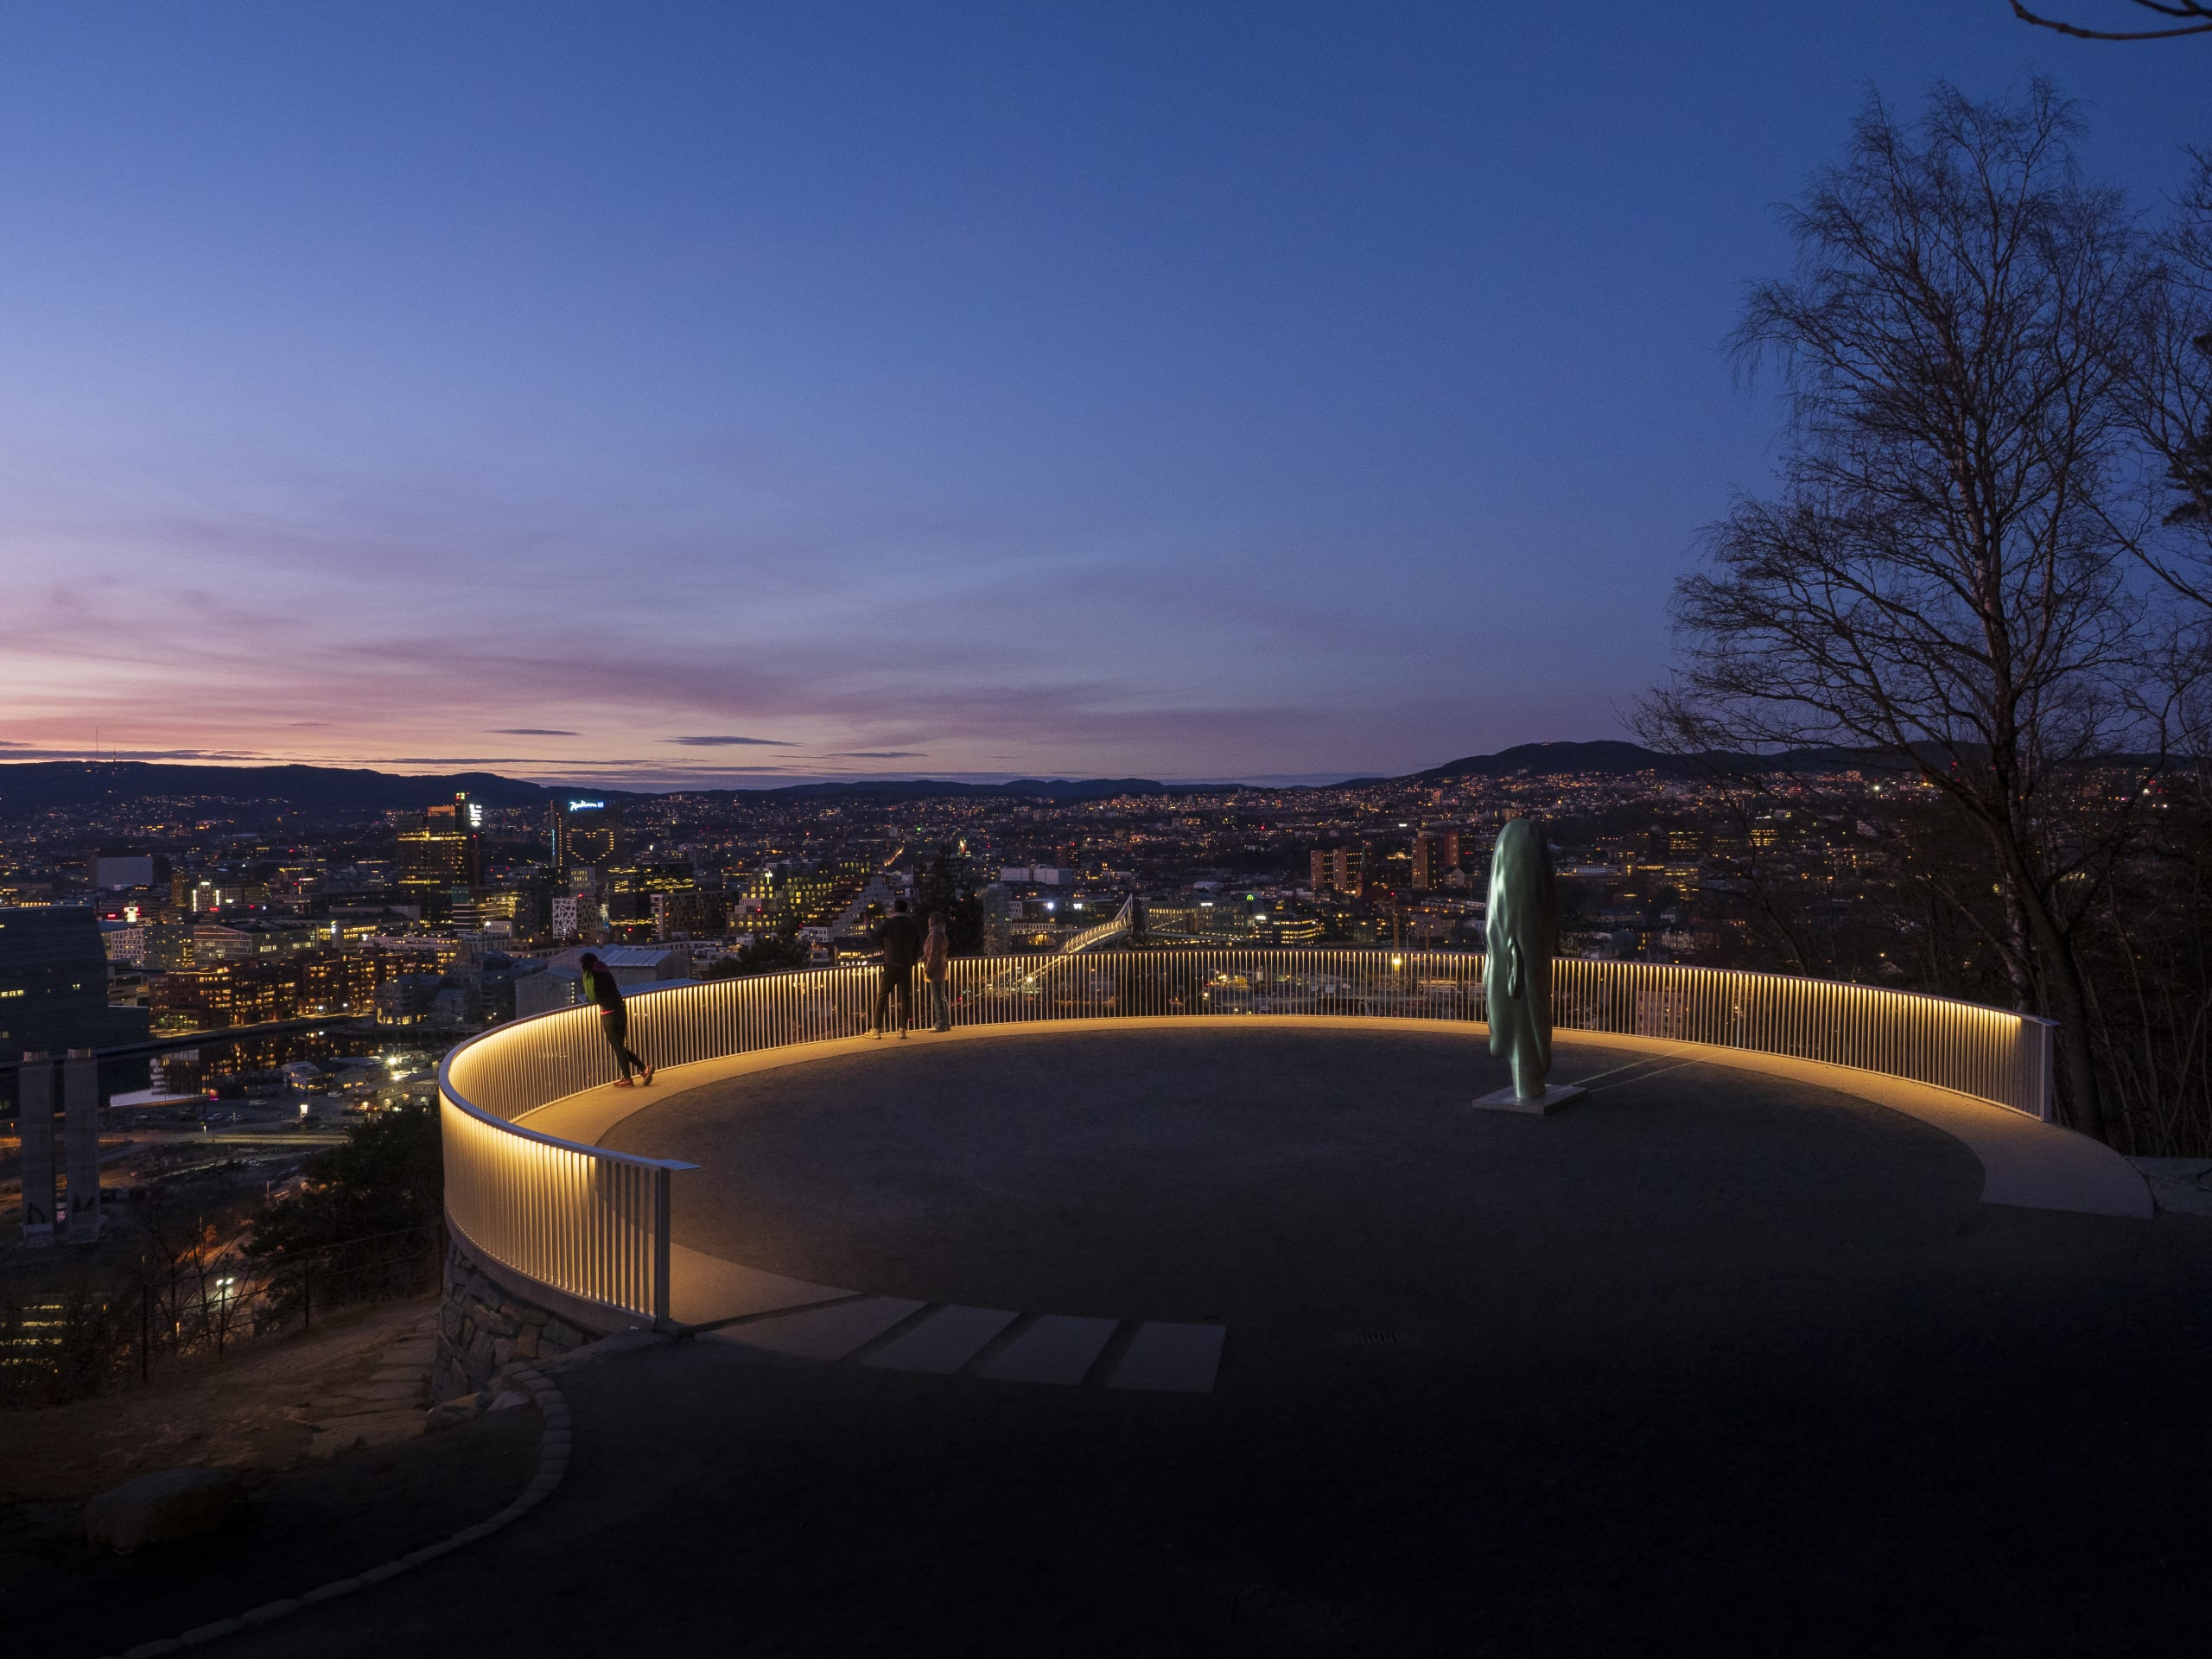 Ekeberg skulpture park in Oslo